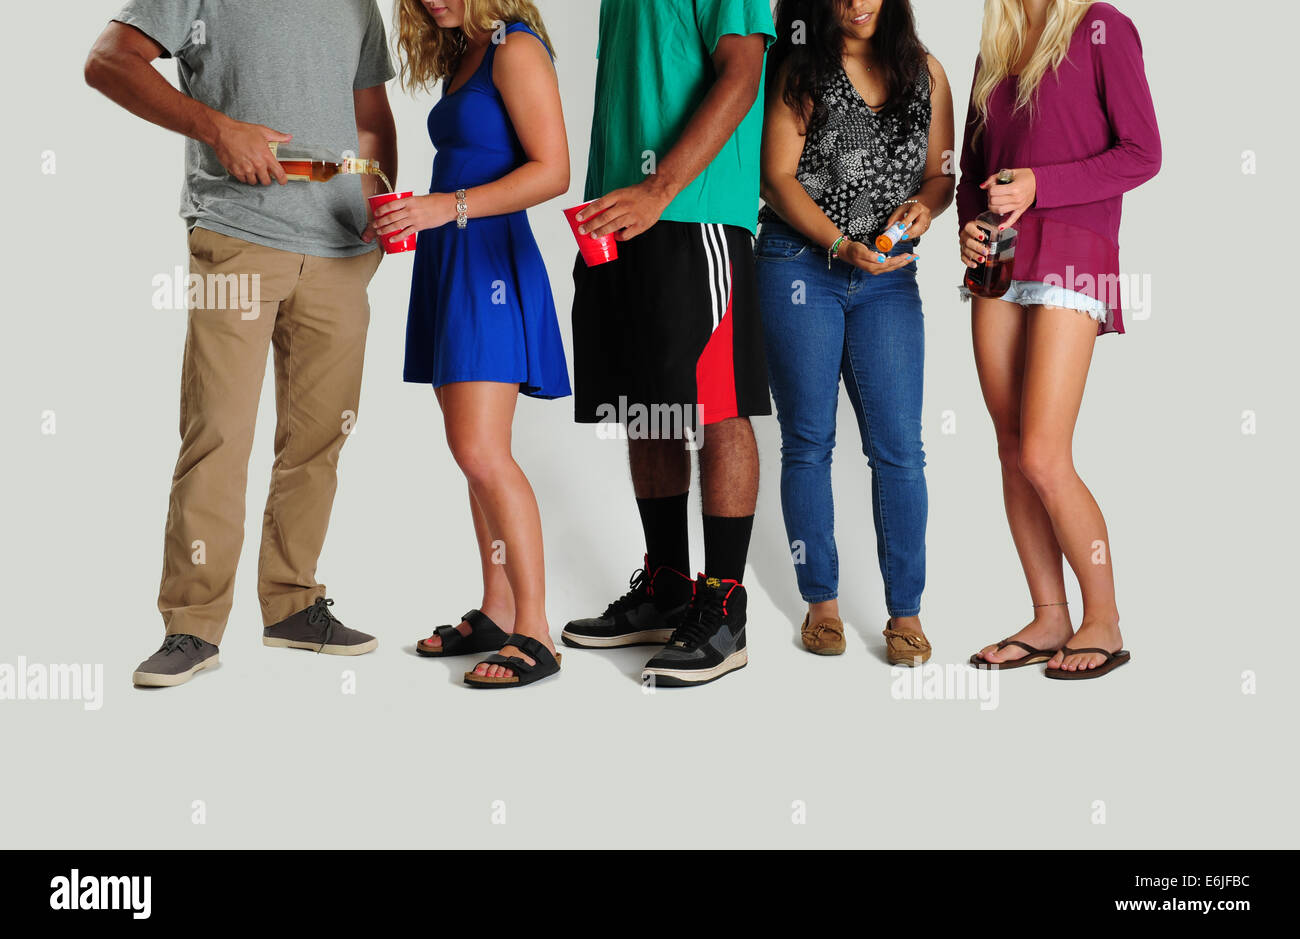 USA Underage alcohol use and drug use - Teens party drinking and taking drugs pills sharing - Stock Image